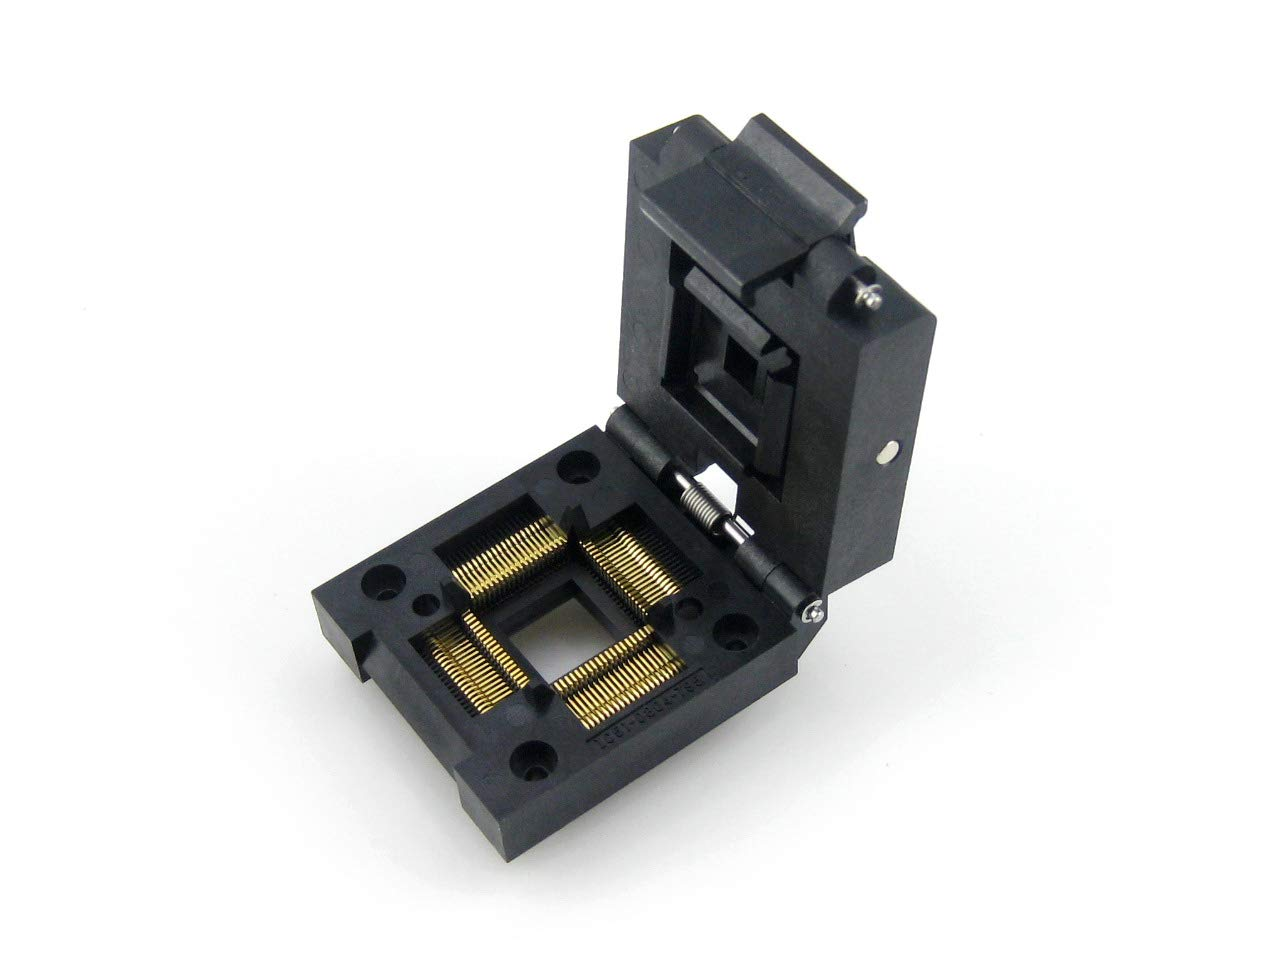 QFP80 Clamshell Programming Adapter Socket/Burning Socket/IC Test Socket IC51-0804-795, 80-Pin, 0.65mm Pitch, Yamaichi IC Test Burn-in Socket, Applied to QFP80, TQFP80, FQFP80, PQFP80 Packages. by pzsmocn